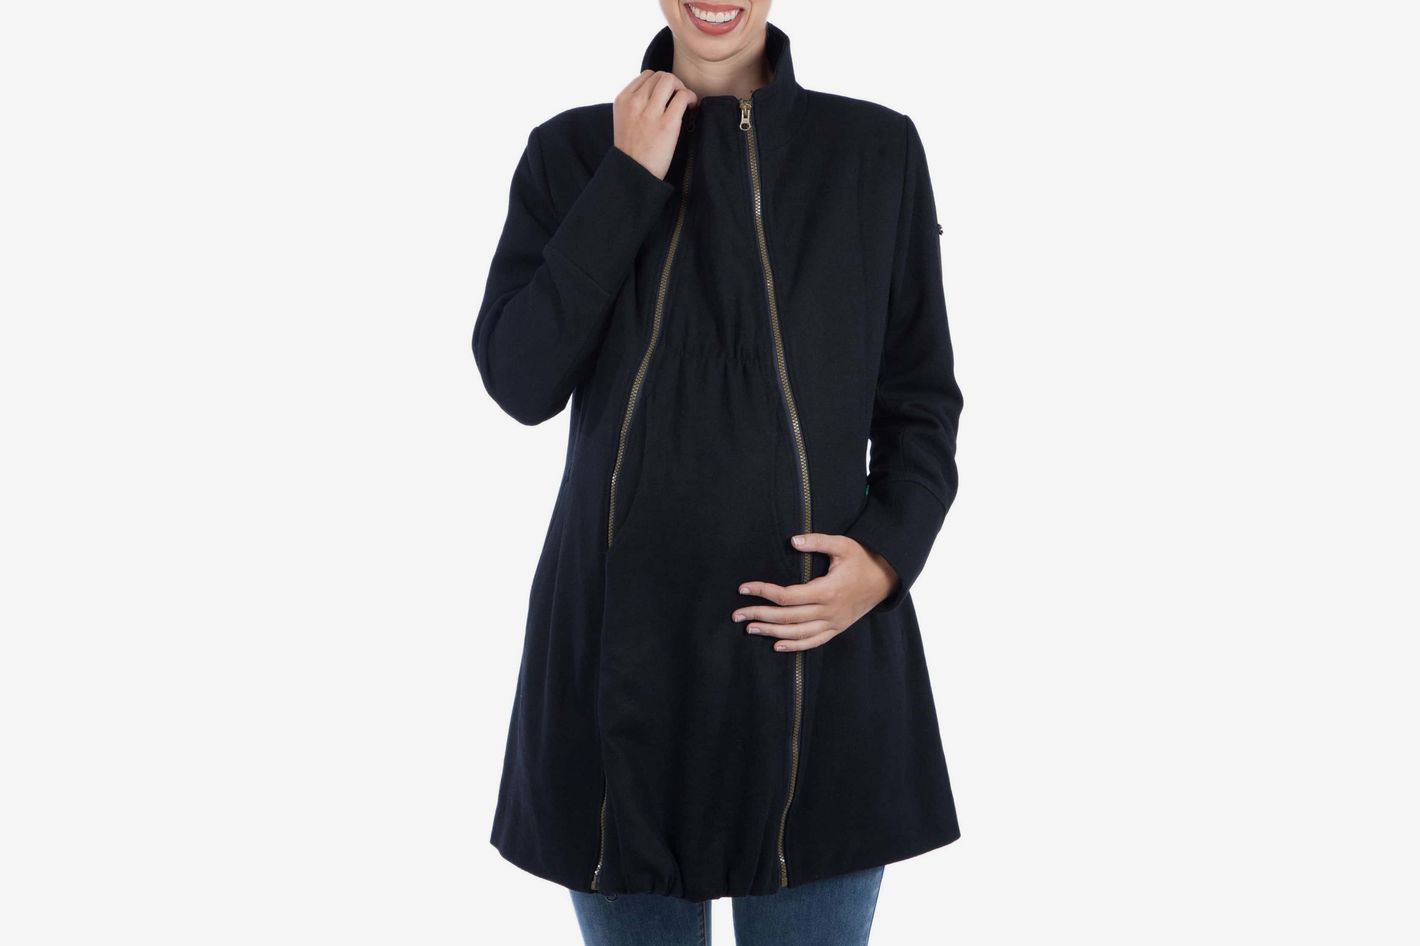 7f8e3d110a0 Modern Eternity Convertible 3-in-1 Maternity Nursing Coat